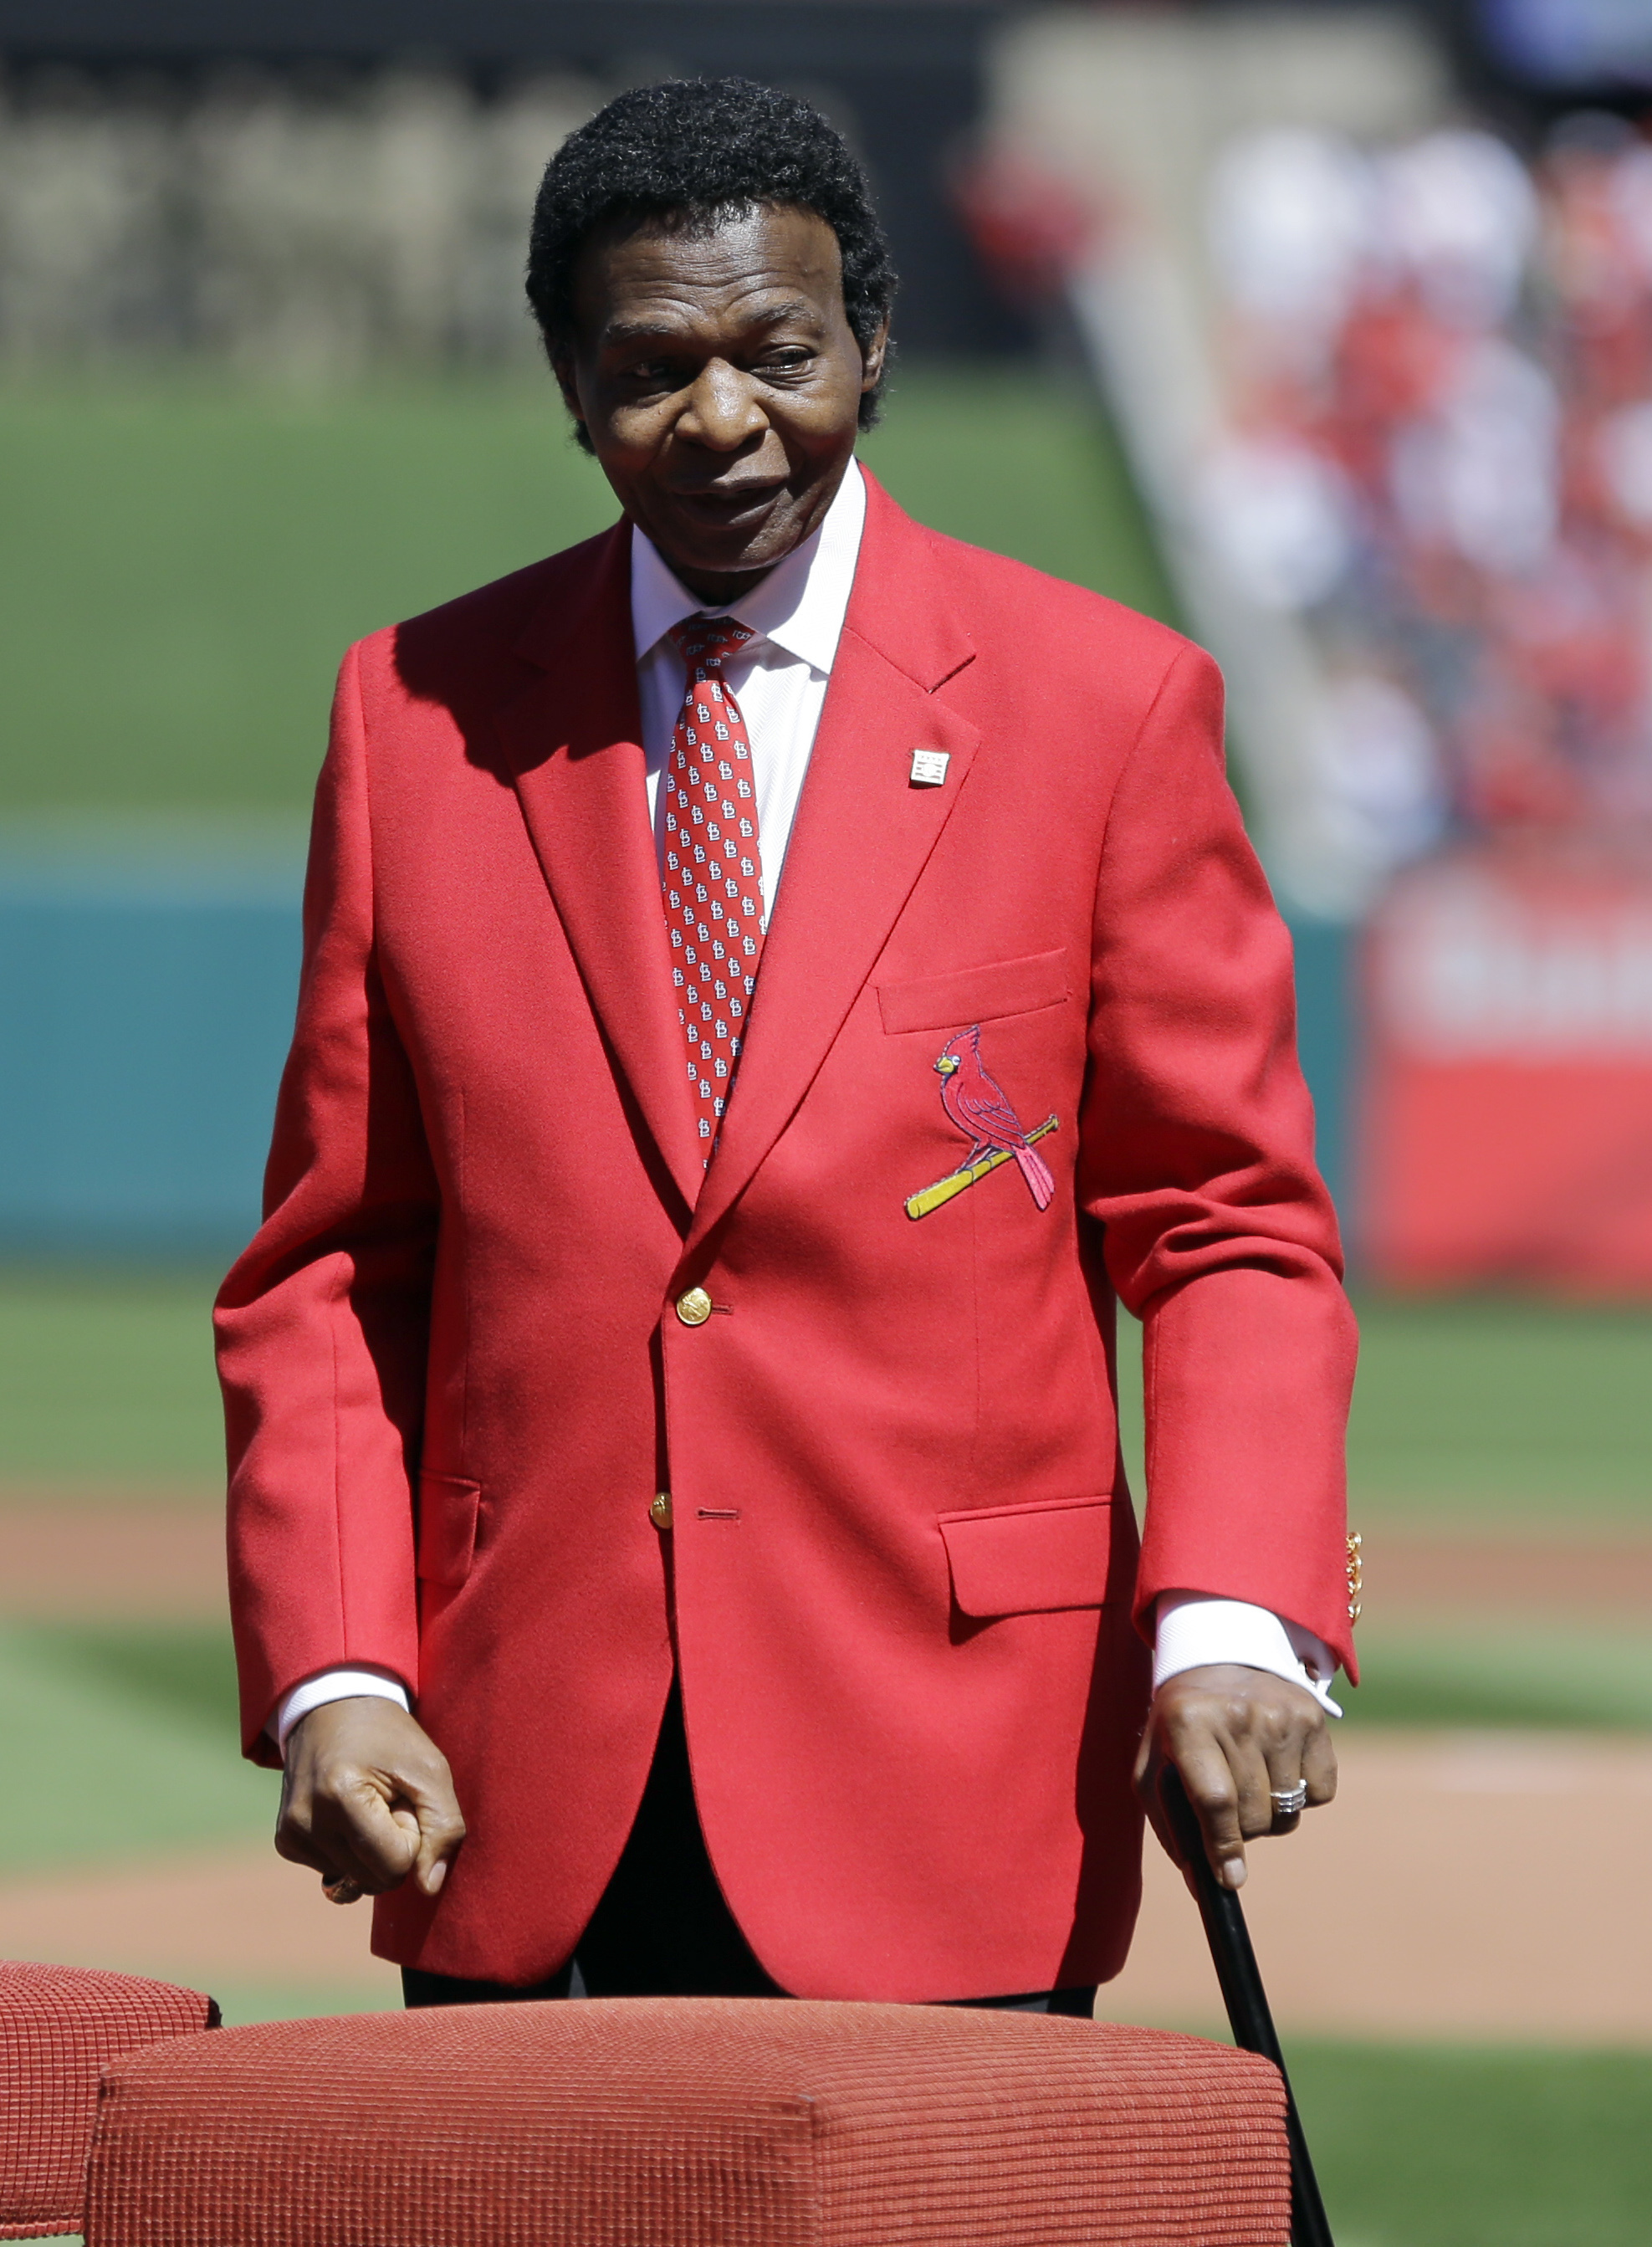 Former St. Louis Cardinals great Lou Brock is introduced before the start a baseball game between the St. Louis Cardinals and the Milwaukee Brewers Monday, April 11, 2016, in St. Louis. Brock, the former base stealing record holder and Major League Hall o